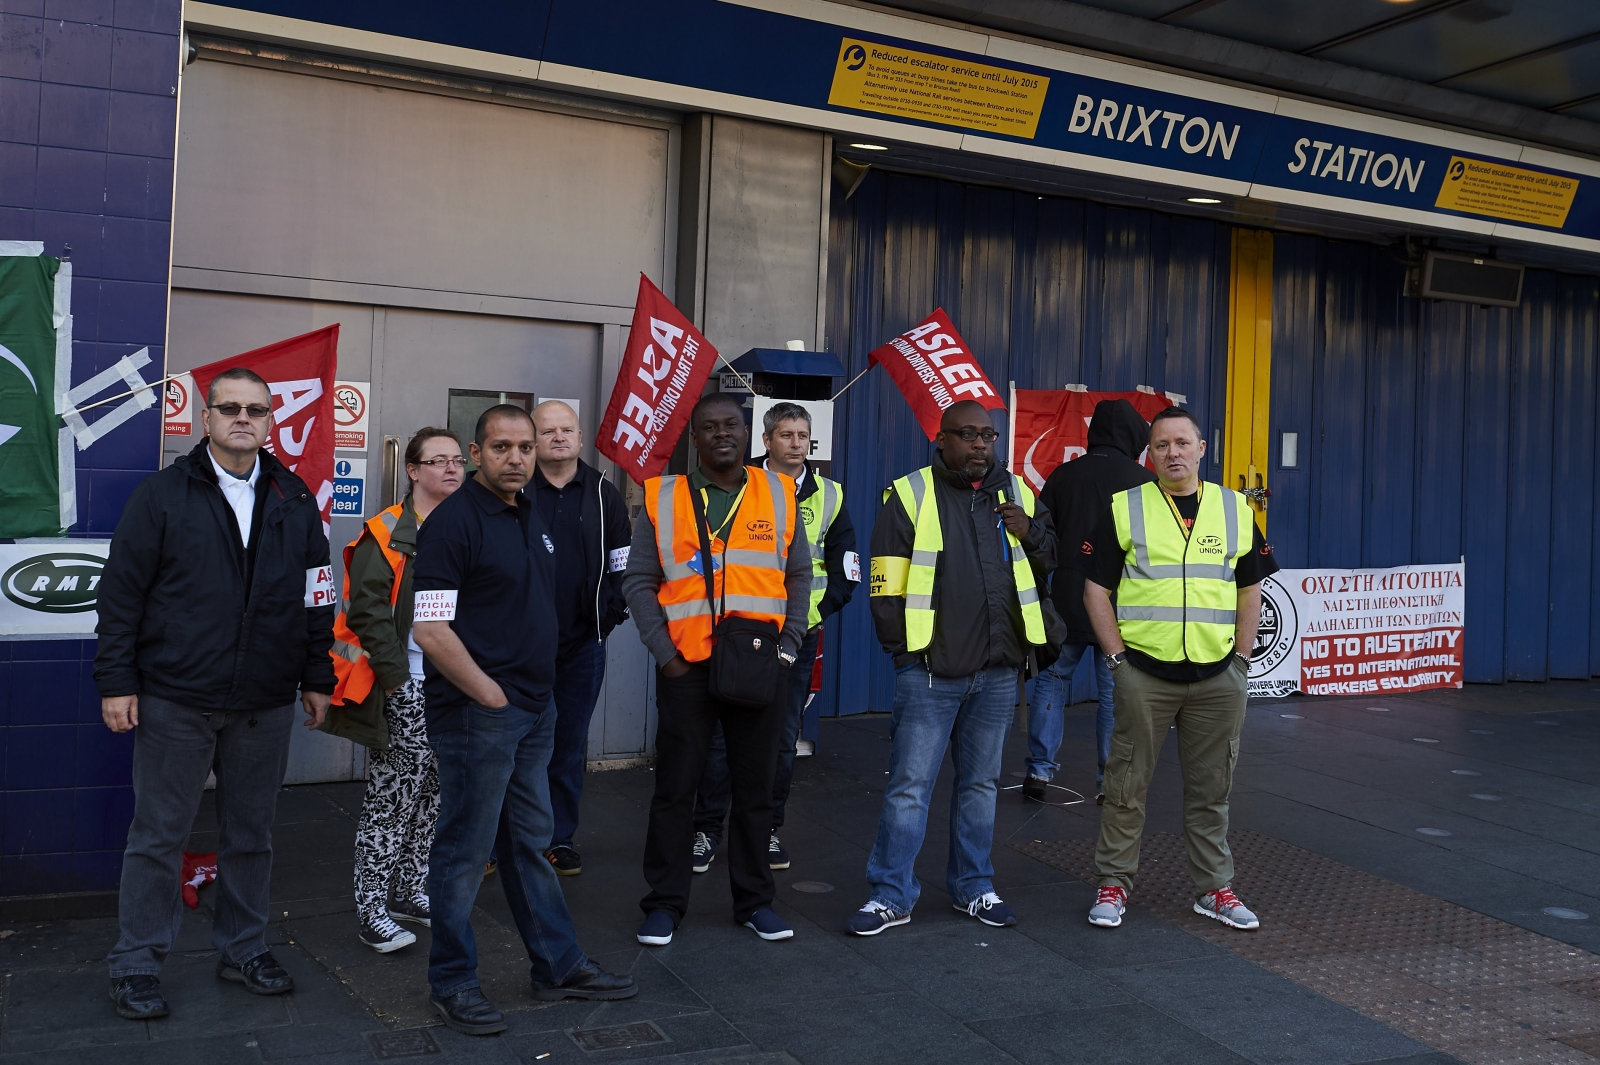 RMT and Aslef members picket